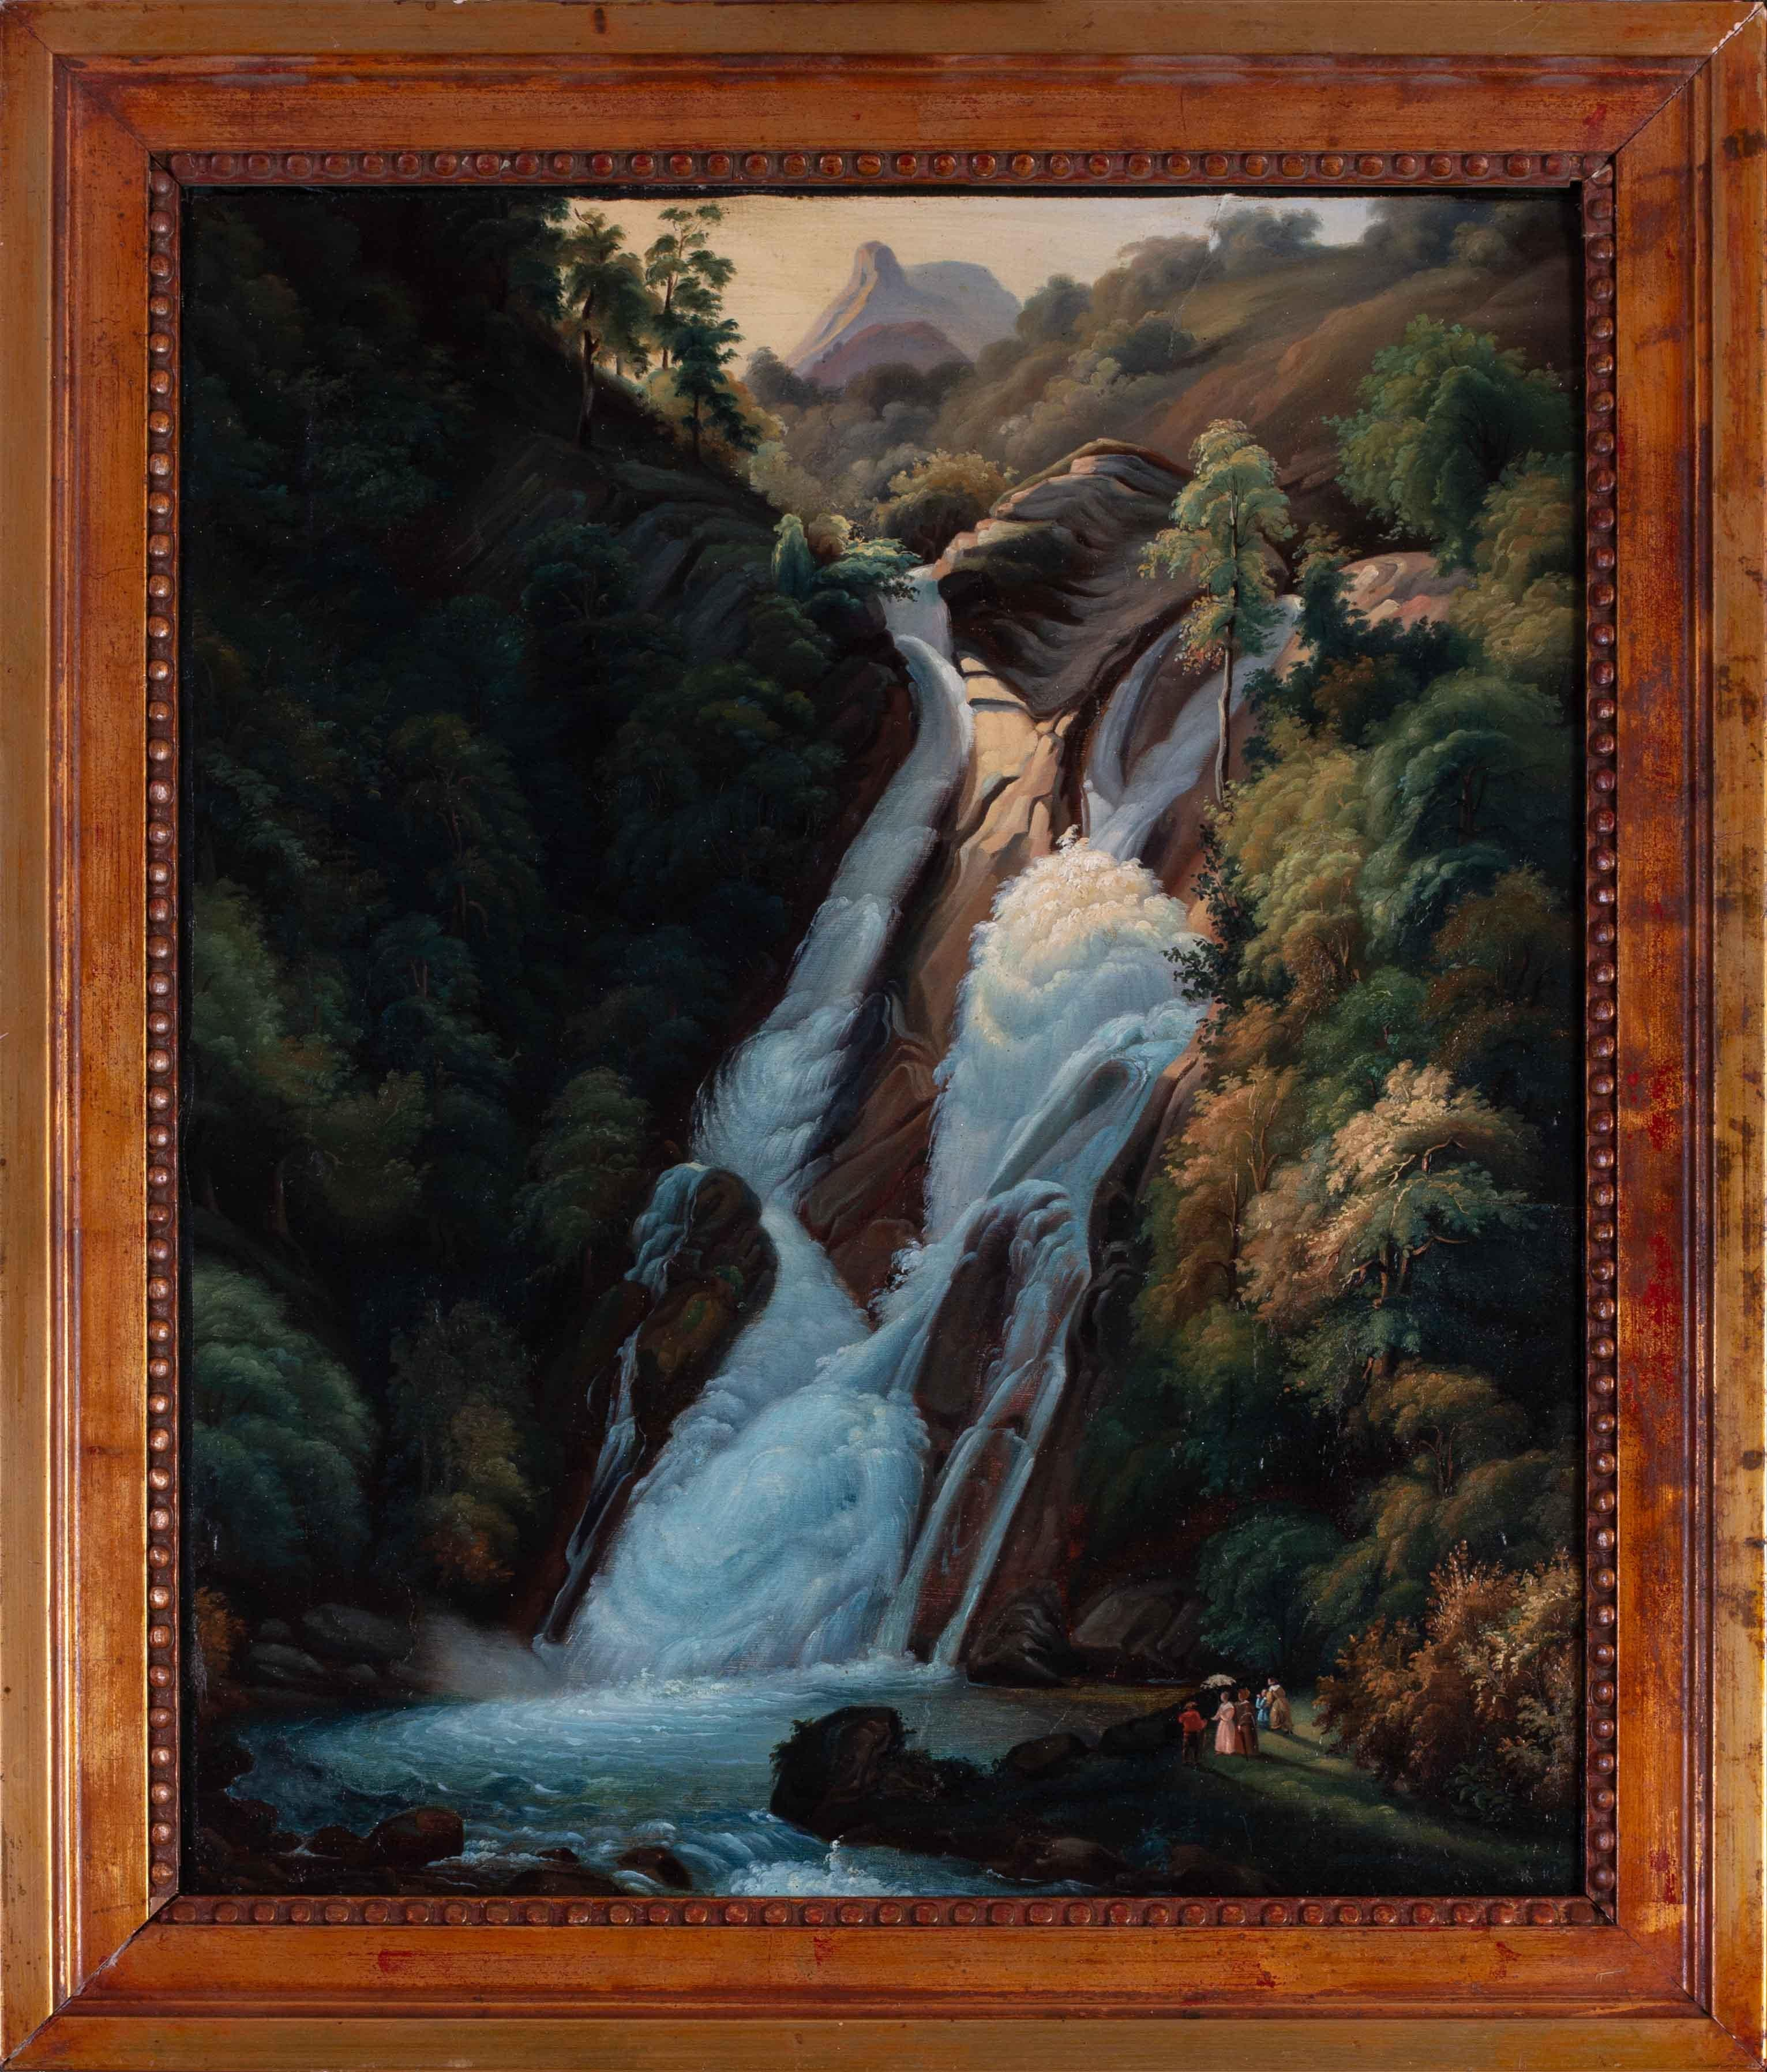 19th C. German painting of figures at a waterfall in the manner of Friedrich